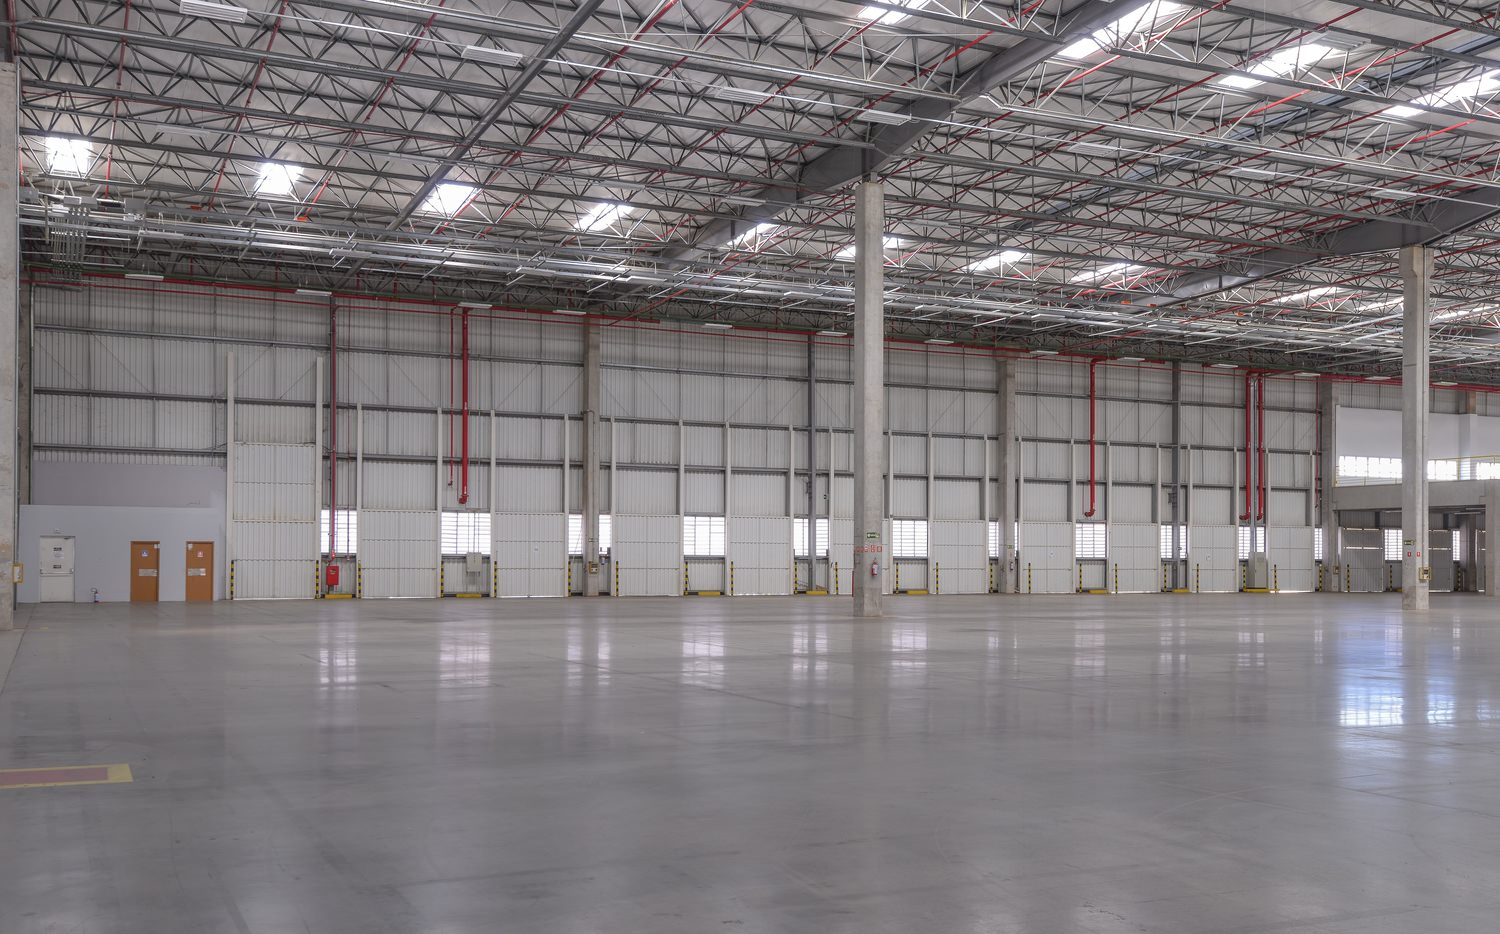 Interior of a large parking area, capable of holding several trucks.